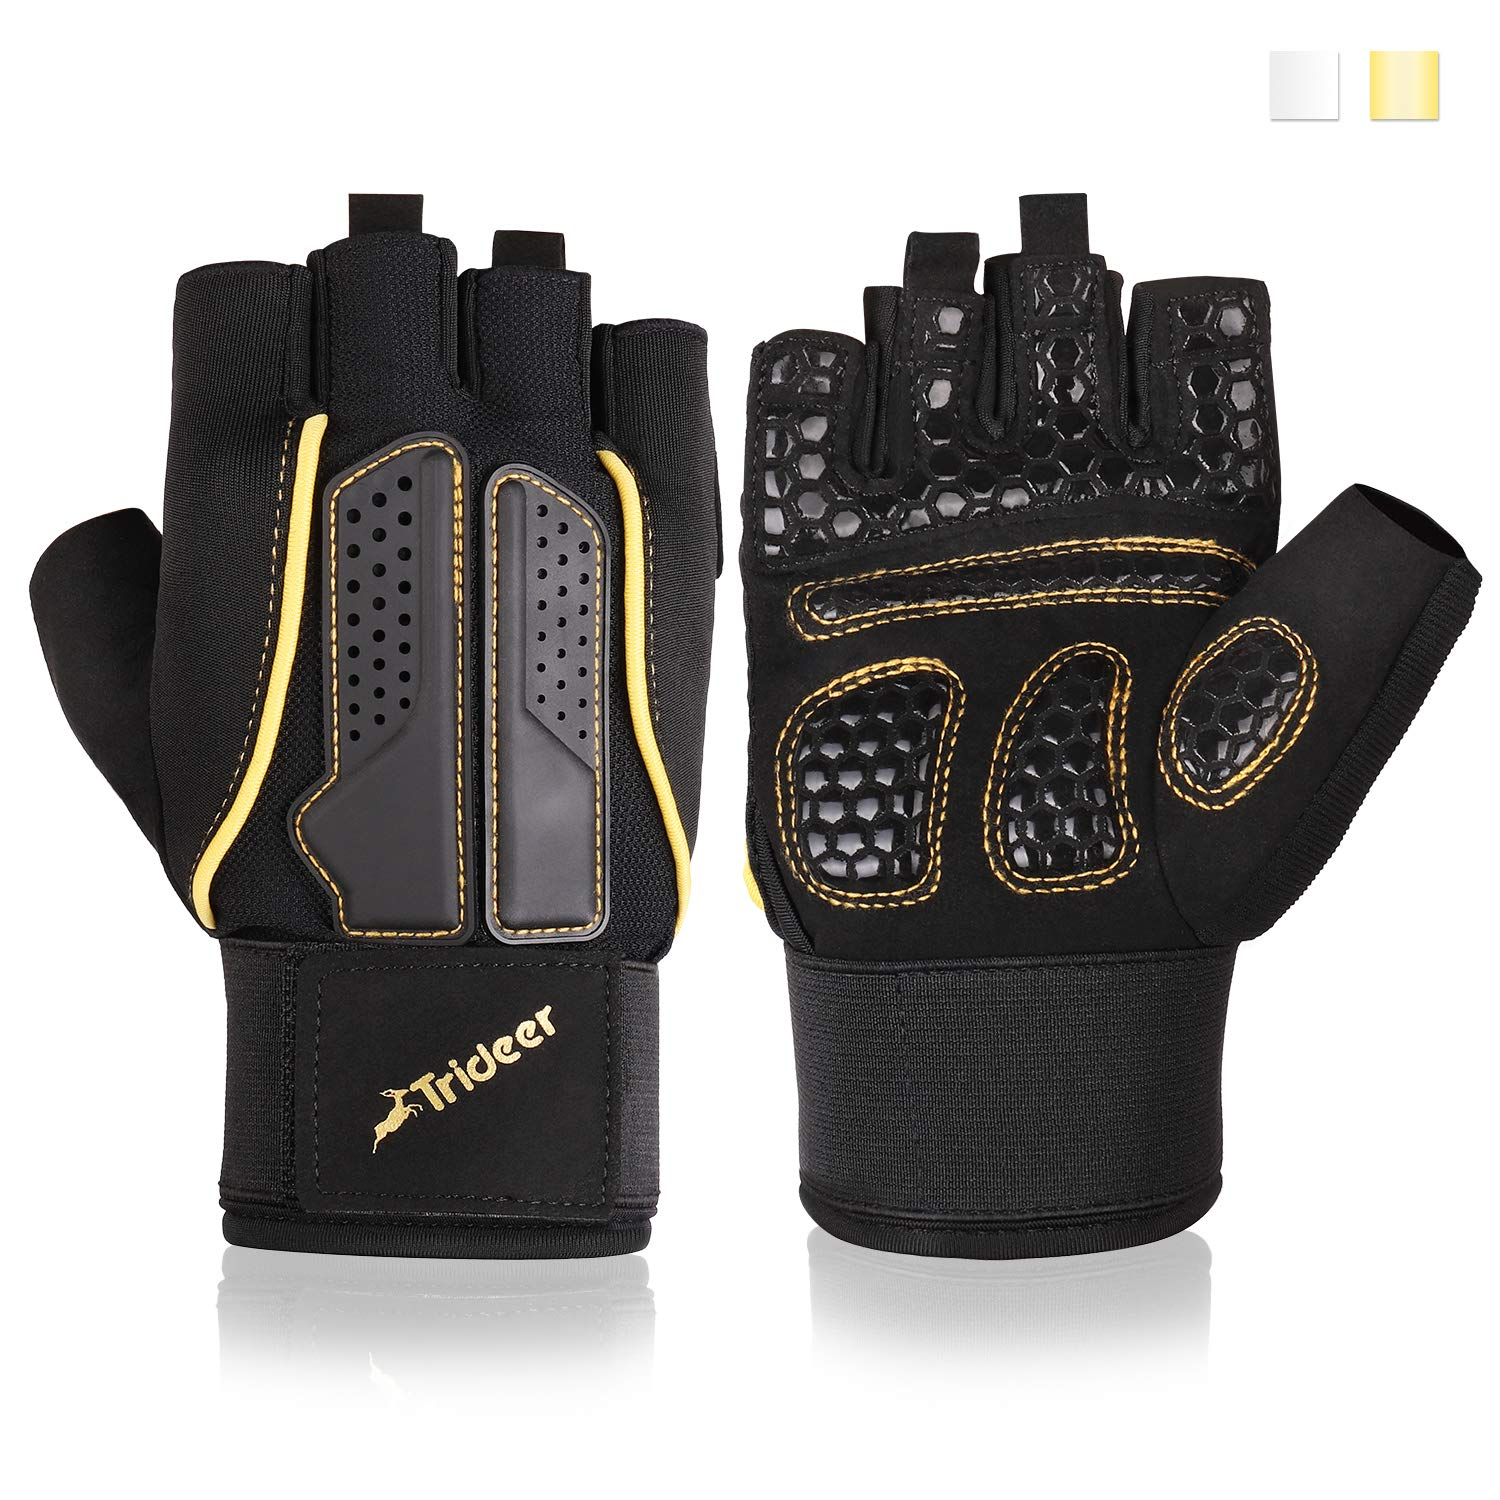 Trideer Padded Weight Lifting Gloves, Gym Gloves, Workout Gloves, Rowing Gloves, Exercise Gloves for Powerlifting, Fitness, Cross Training for Men & Women (A# Golden Basic, S (Fits 6.9-7.5 Inches))